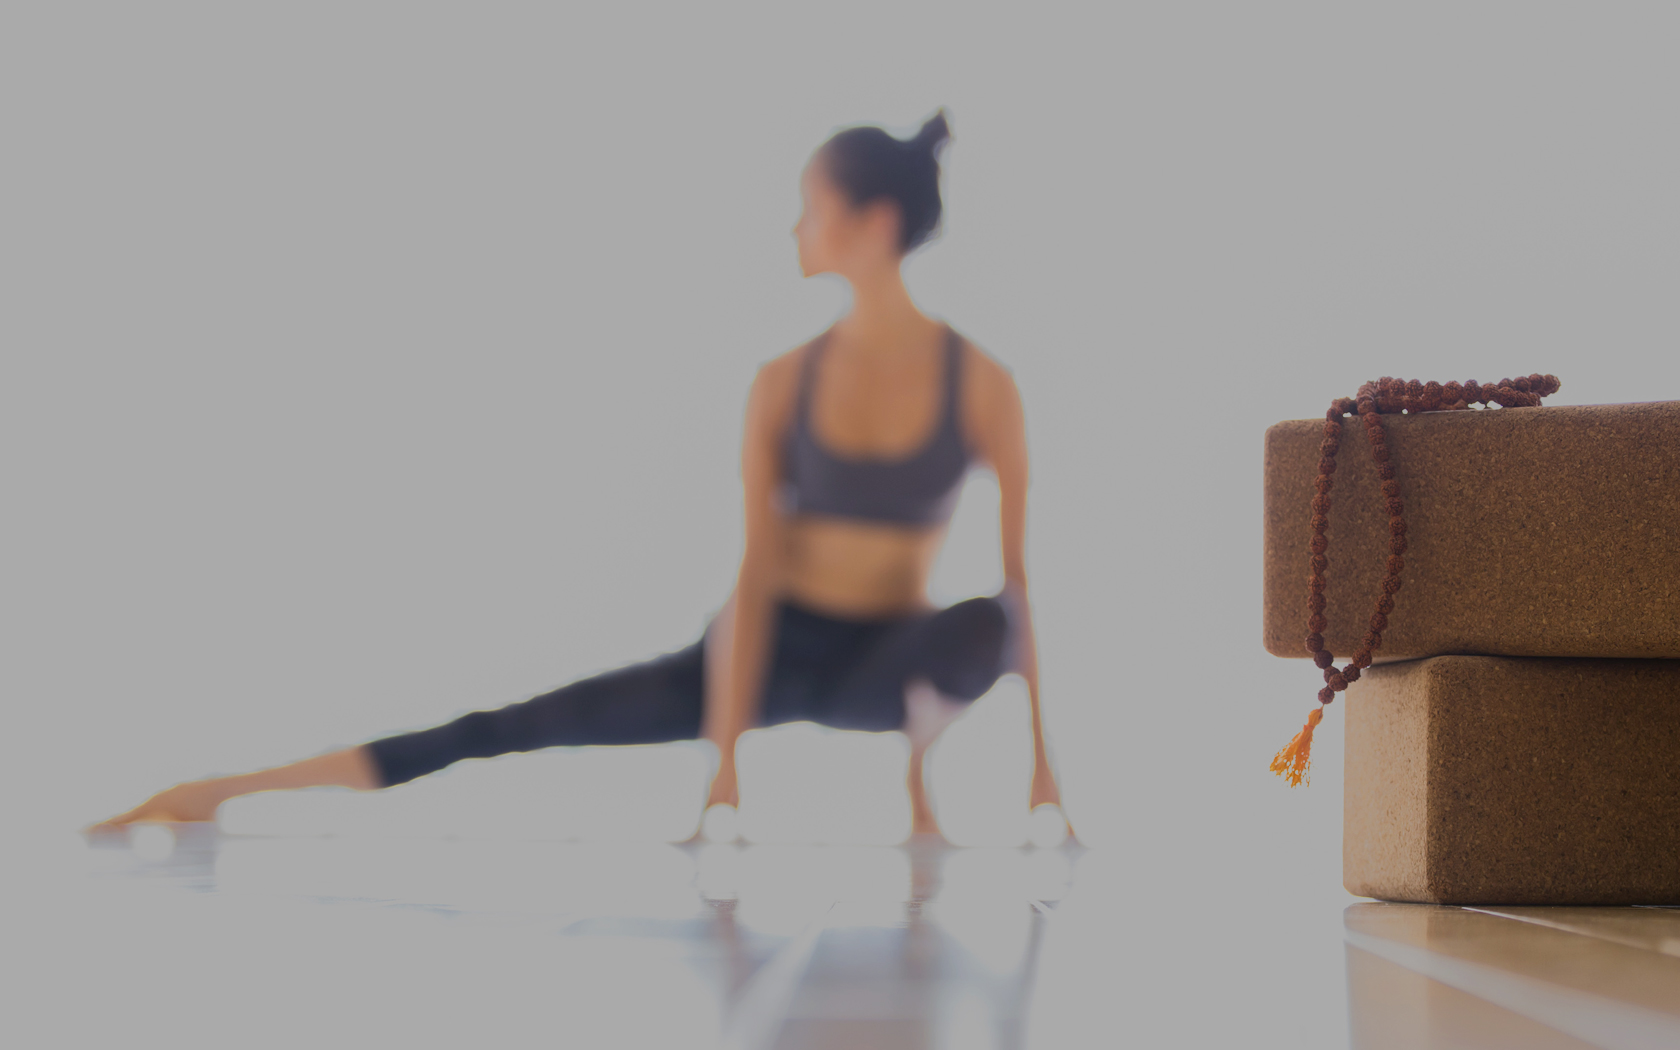 header-consumer-goods-cork-yoga-block-wellbeing.jpg